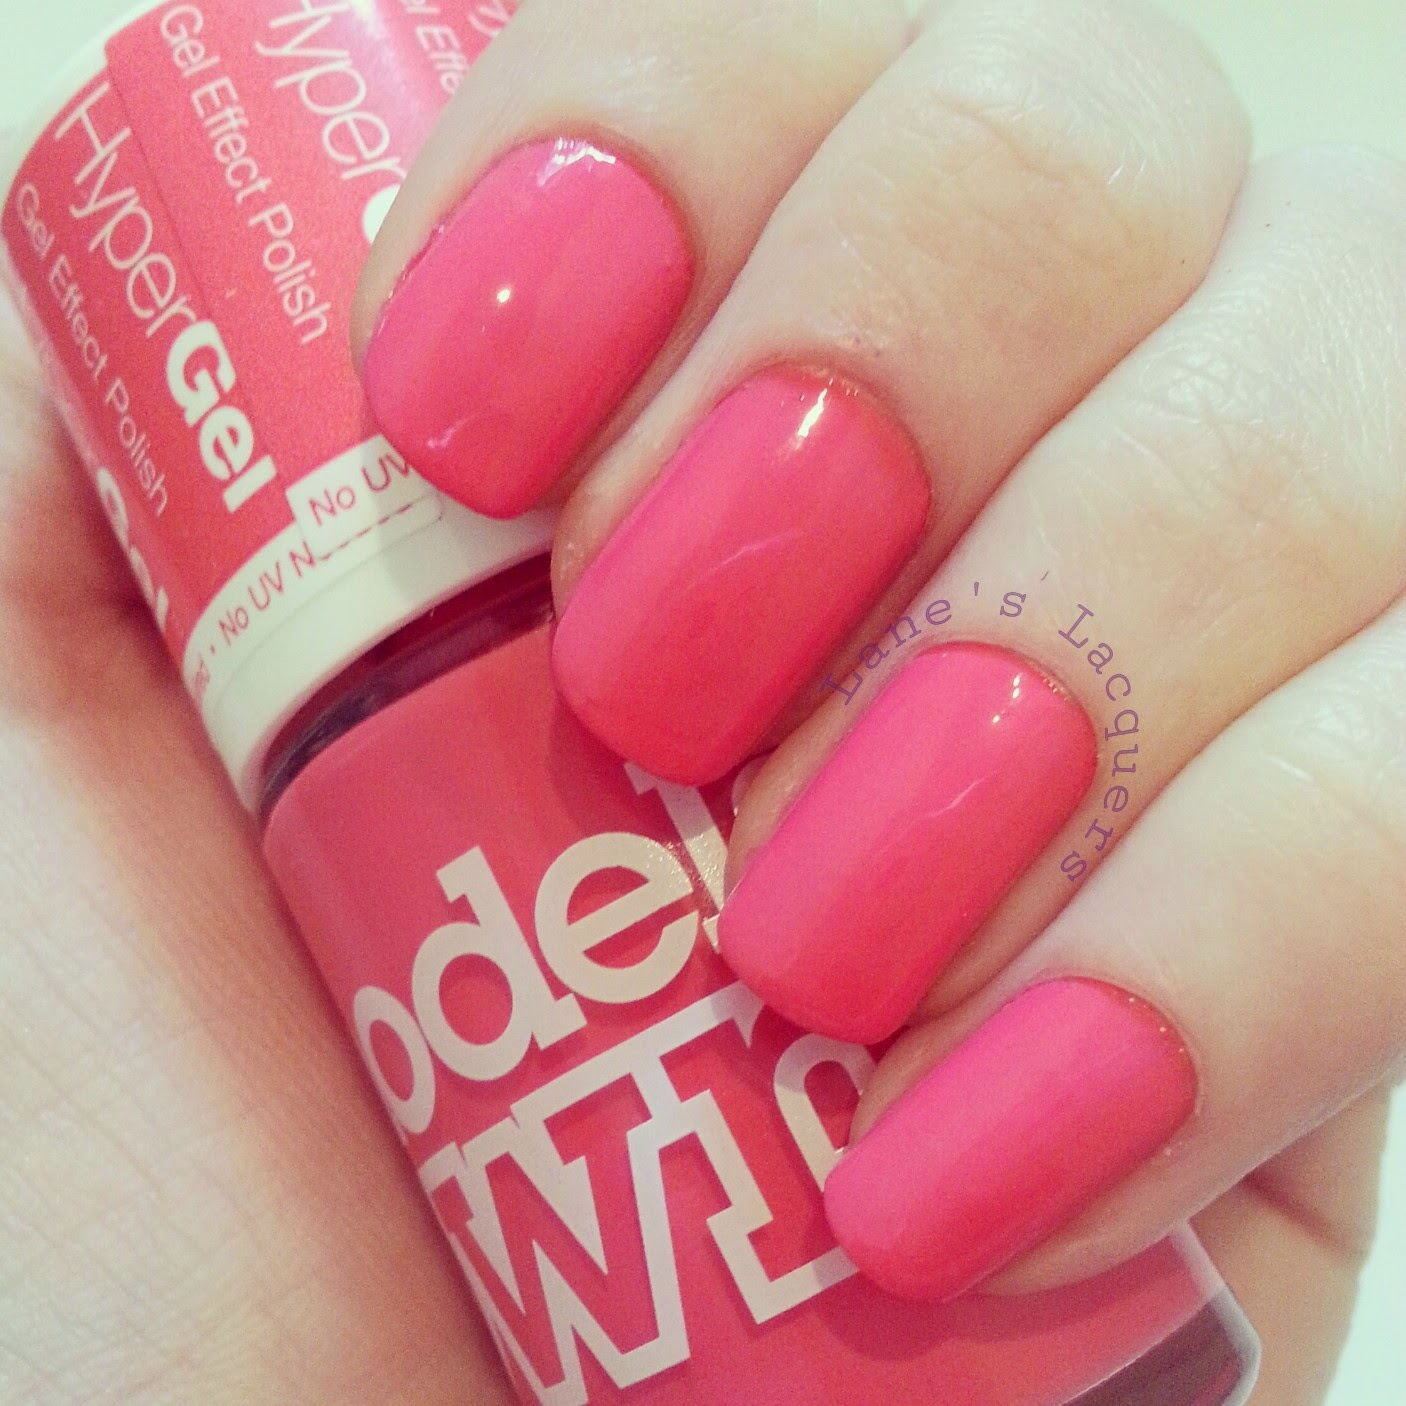 models-own-hypergels-searing-pink-swatch